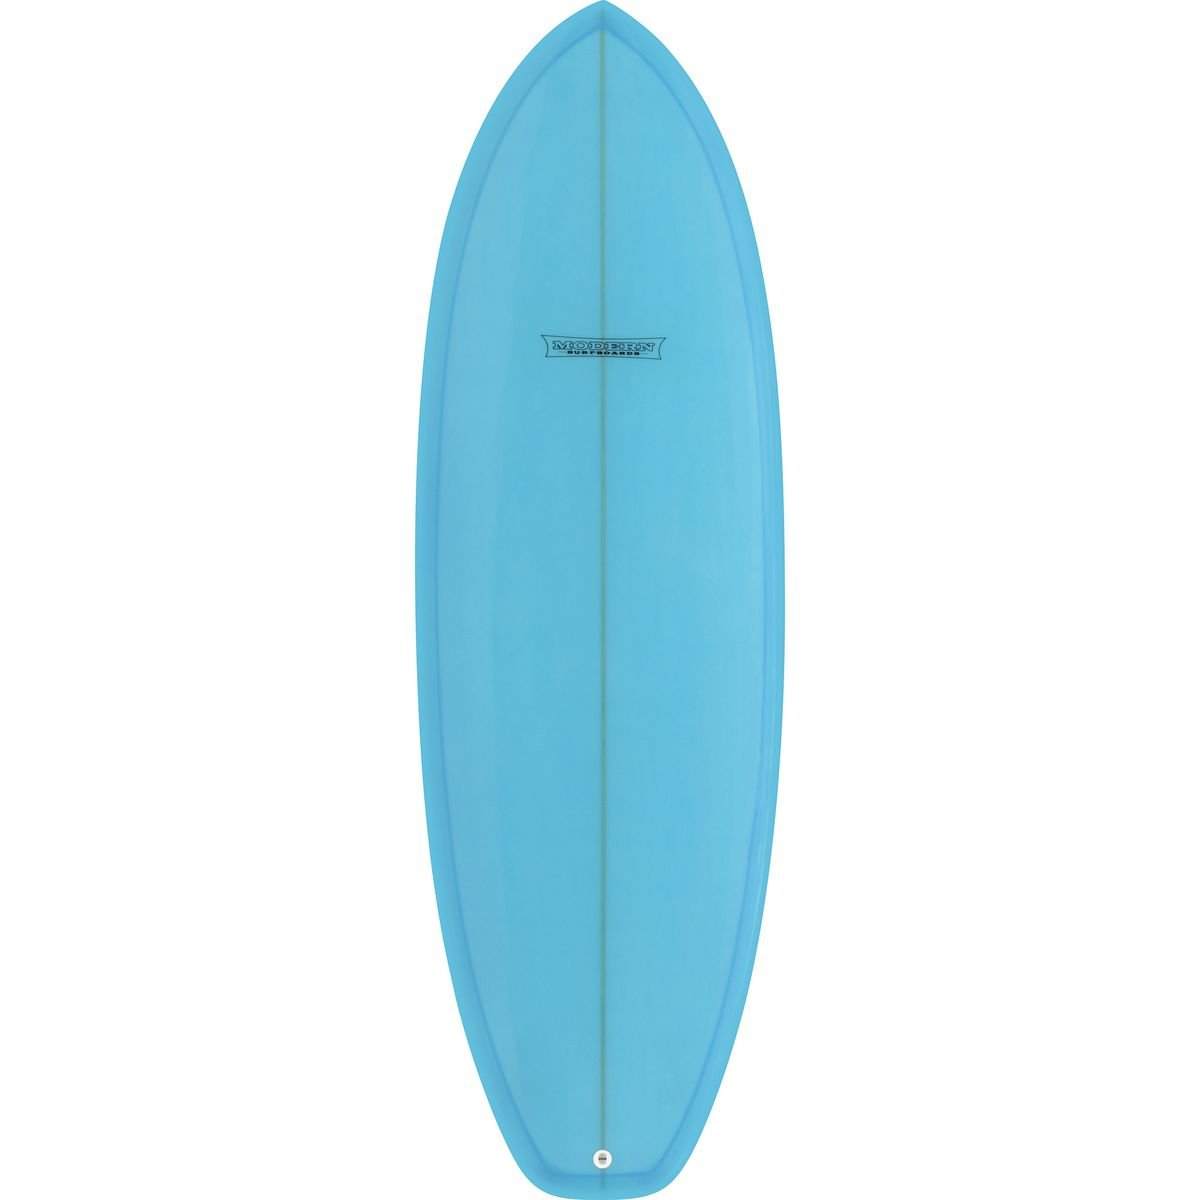 Modern Surfboards Highline PU Surfboard Ice Blue Tint, 5ft 4in by Modern Surfboards